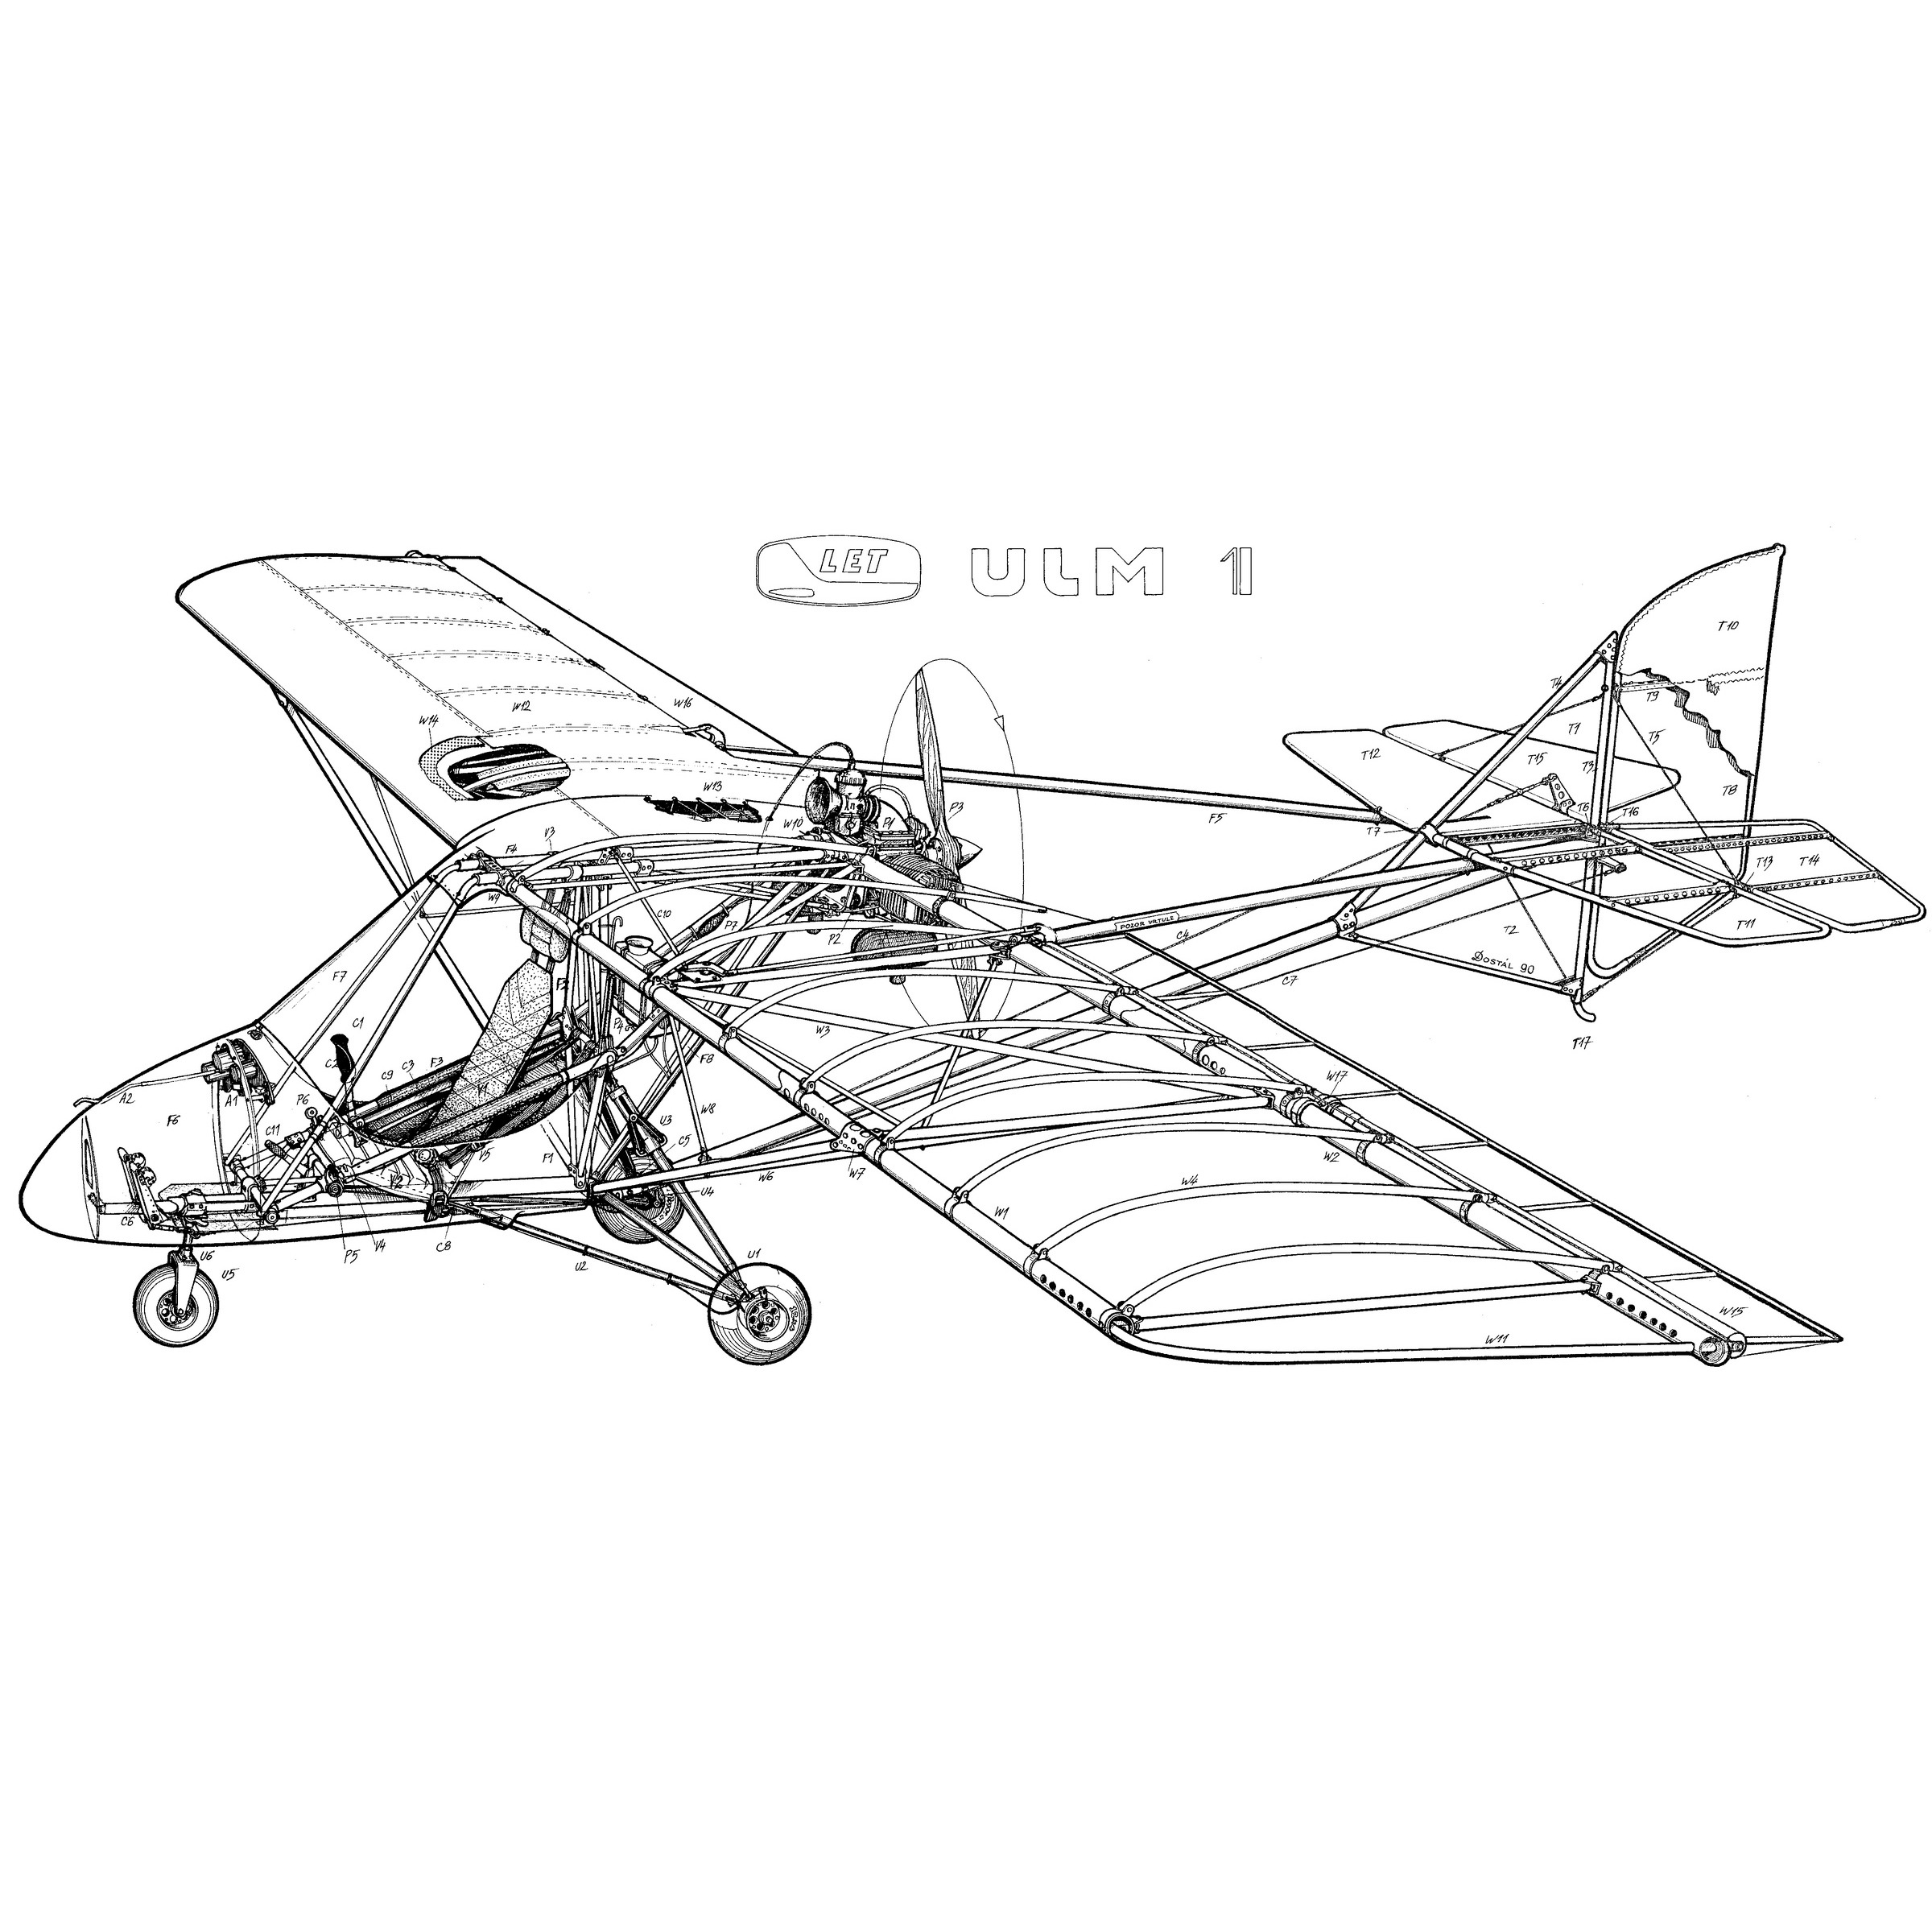 gryf ulm 1 plans and information set for homebuild aircraft